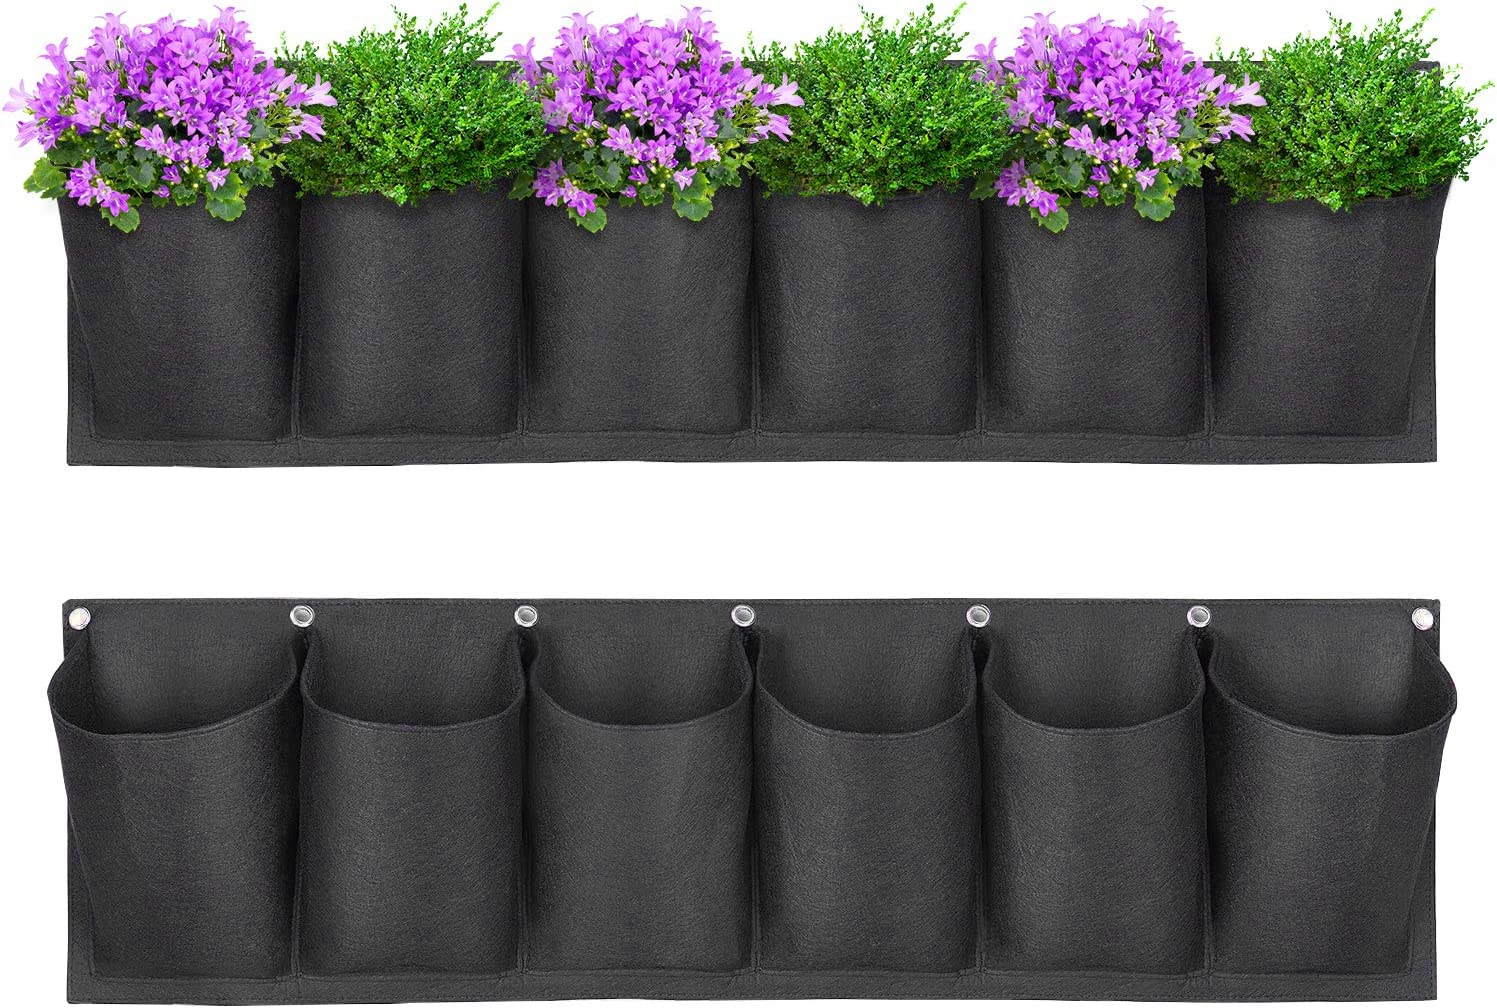 Yuccer Vertical Garden Planter 6 Pockets Planting Grow Bags Wall Hanging Planter For Outdoor Indoor Yards Garden Vegetables Flowers Home Decoration Black Amazon Co Uk Garden Outdoors